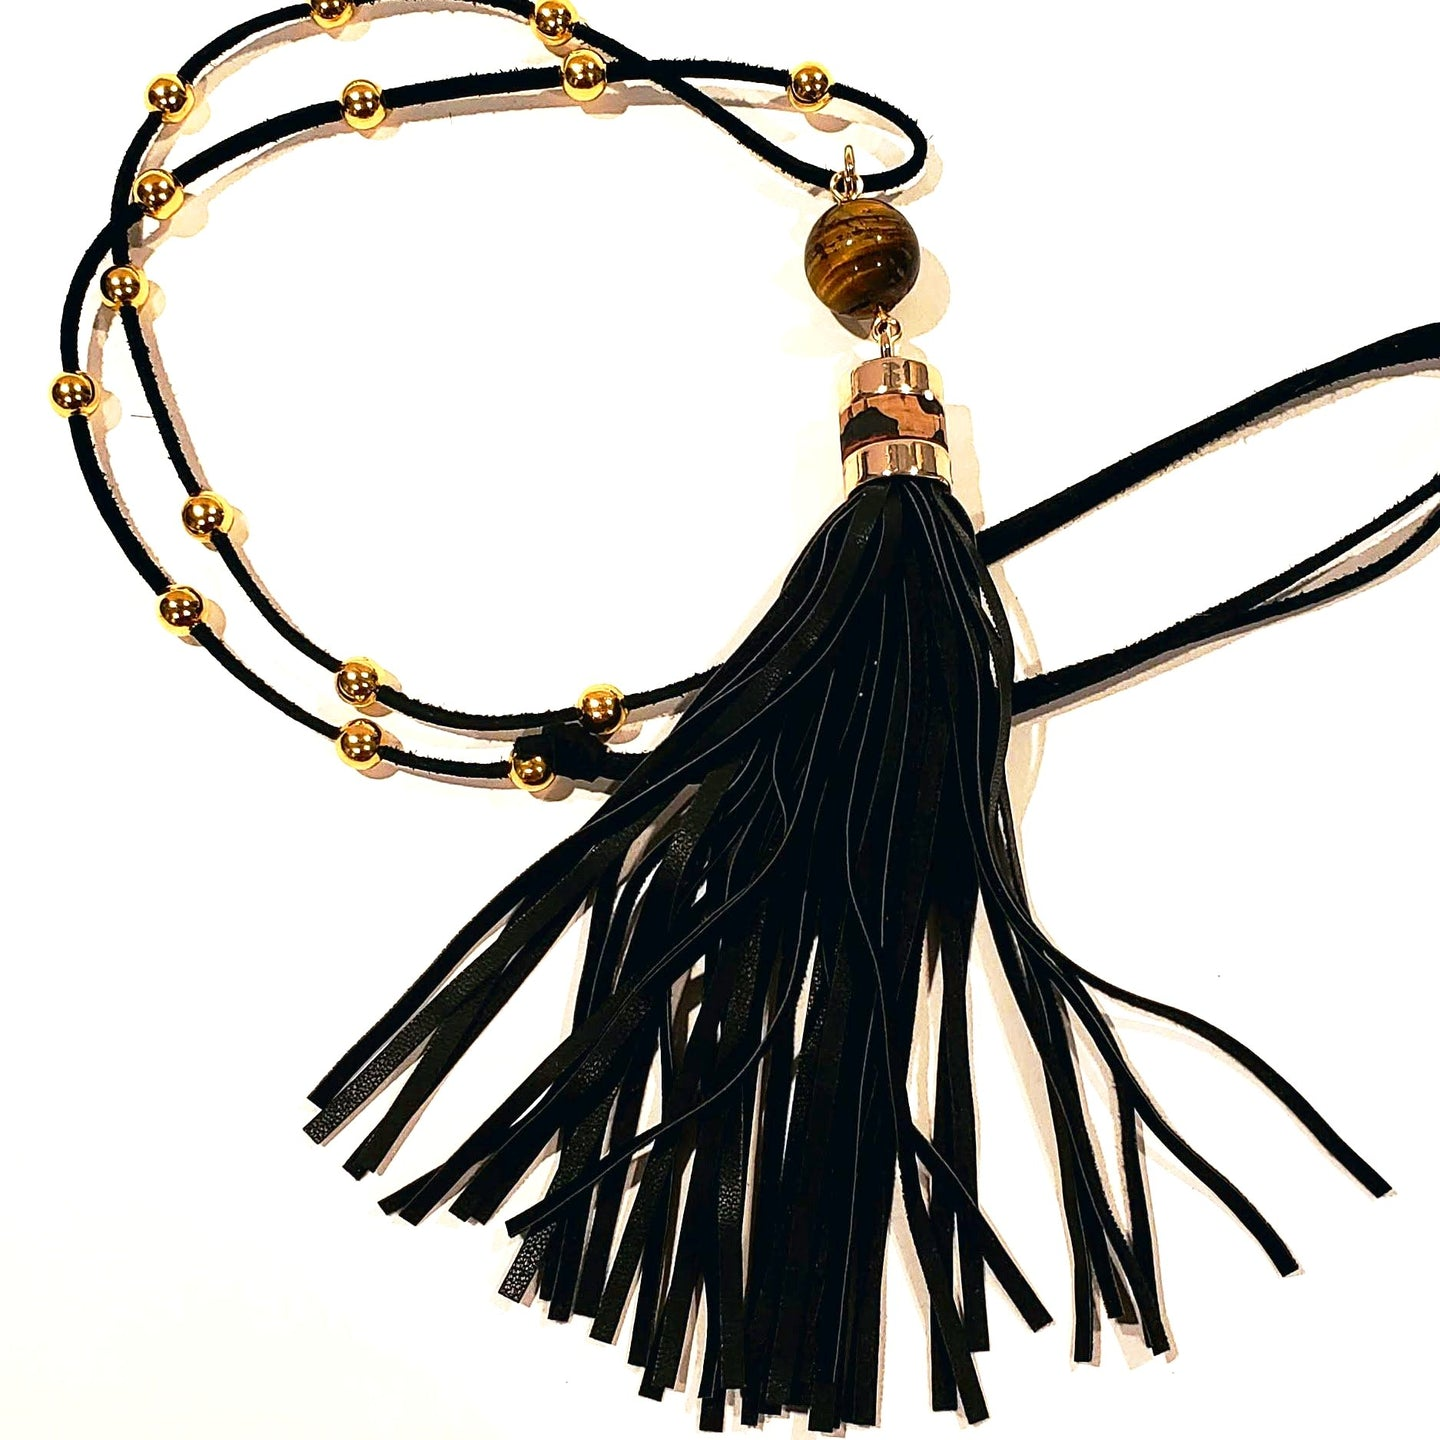 Black tassel necklace with tiger eye gemstone adjustable